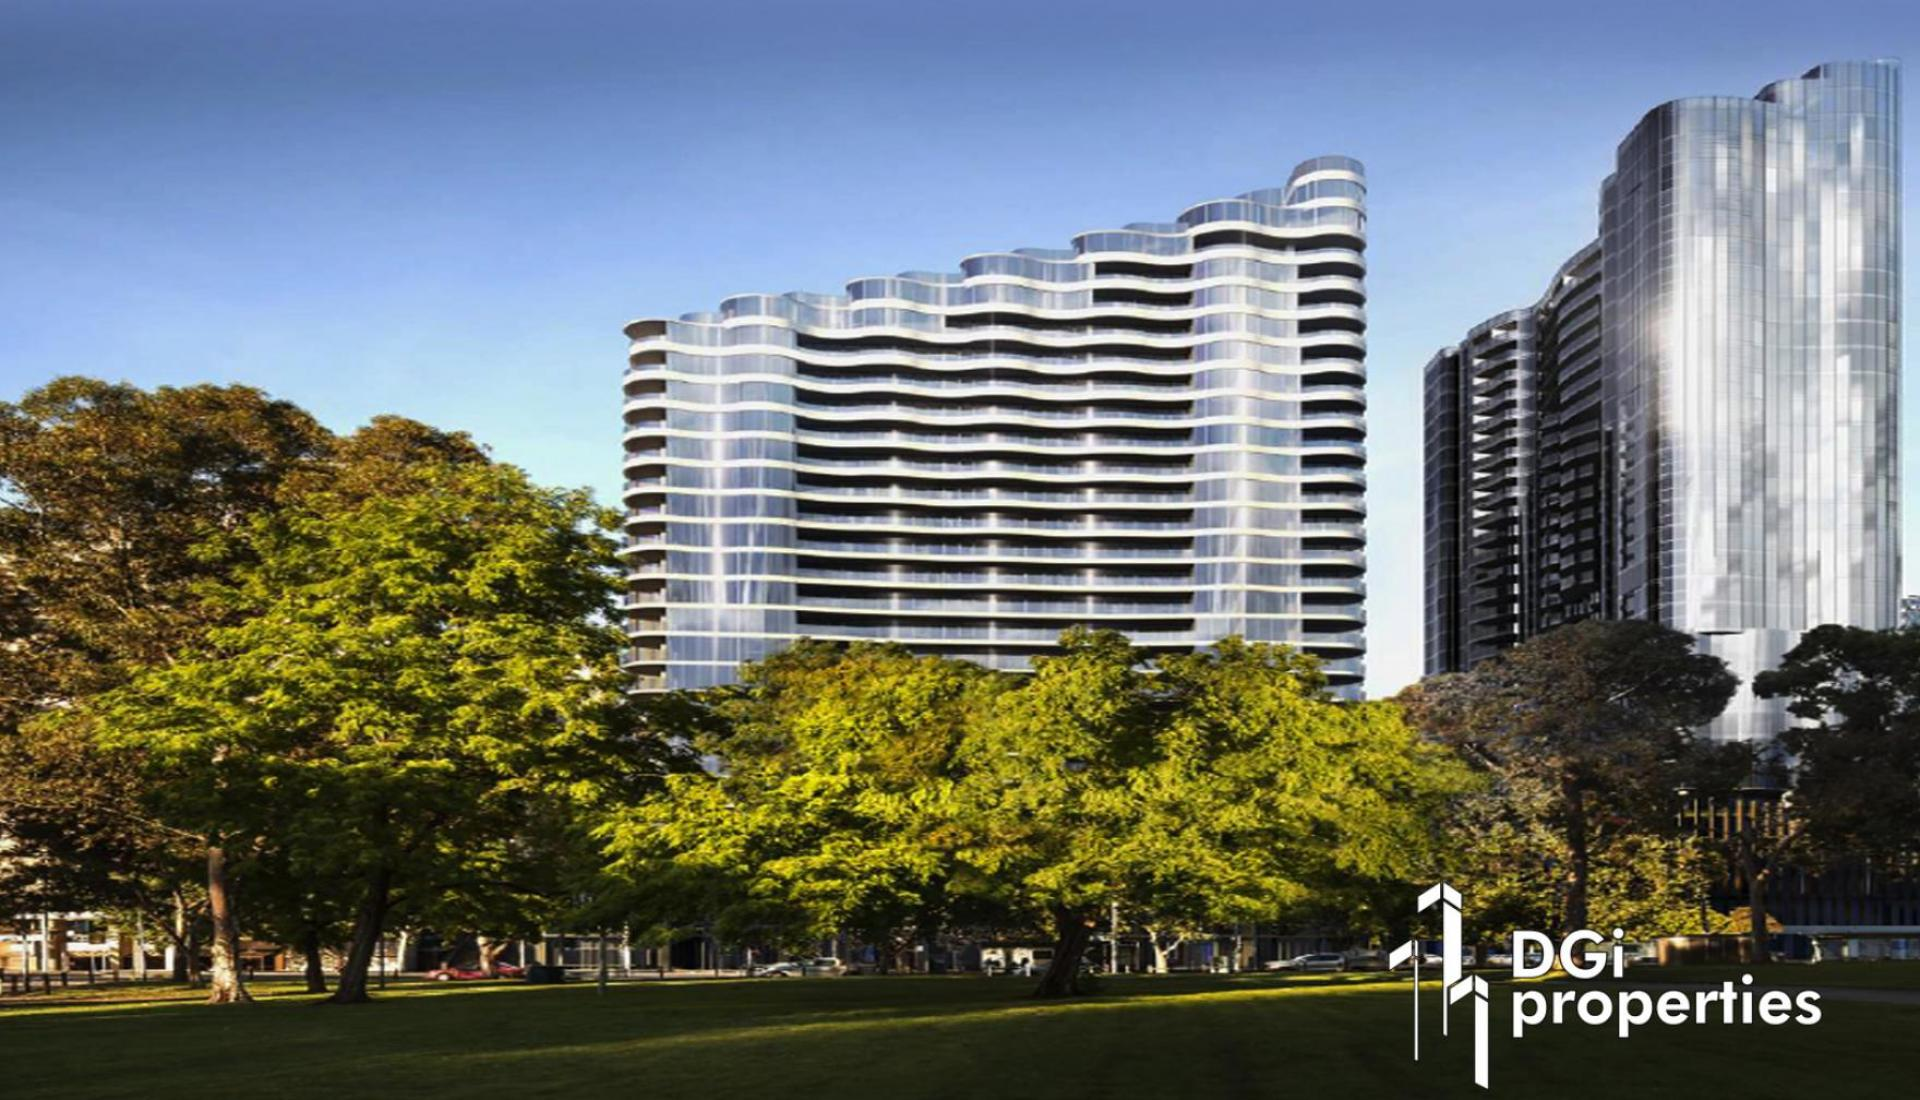 THE STRIKING TOWERS OF FLINDERS BANK HAVE BEEN  INSPIRED BY THE YARRA RIVER